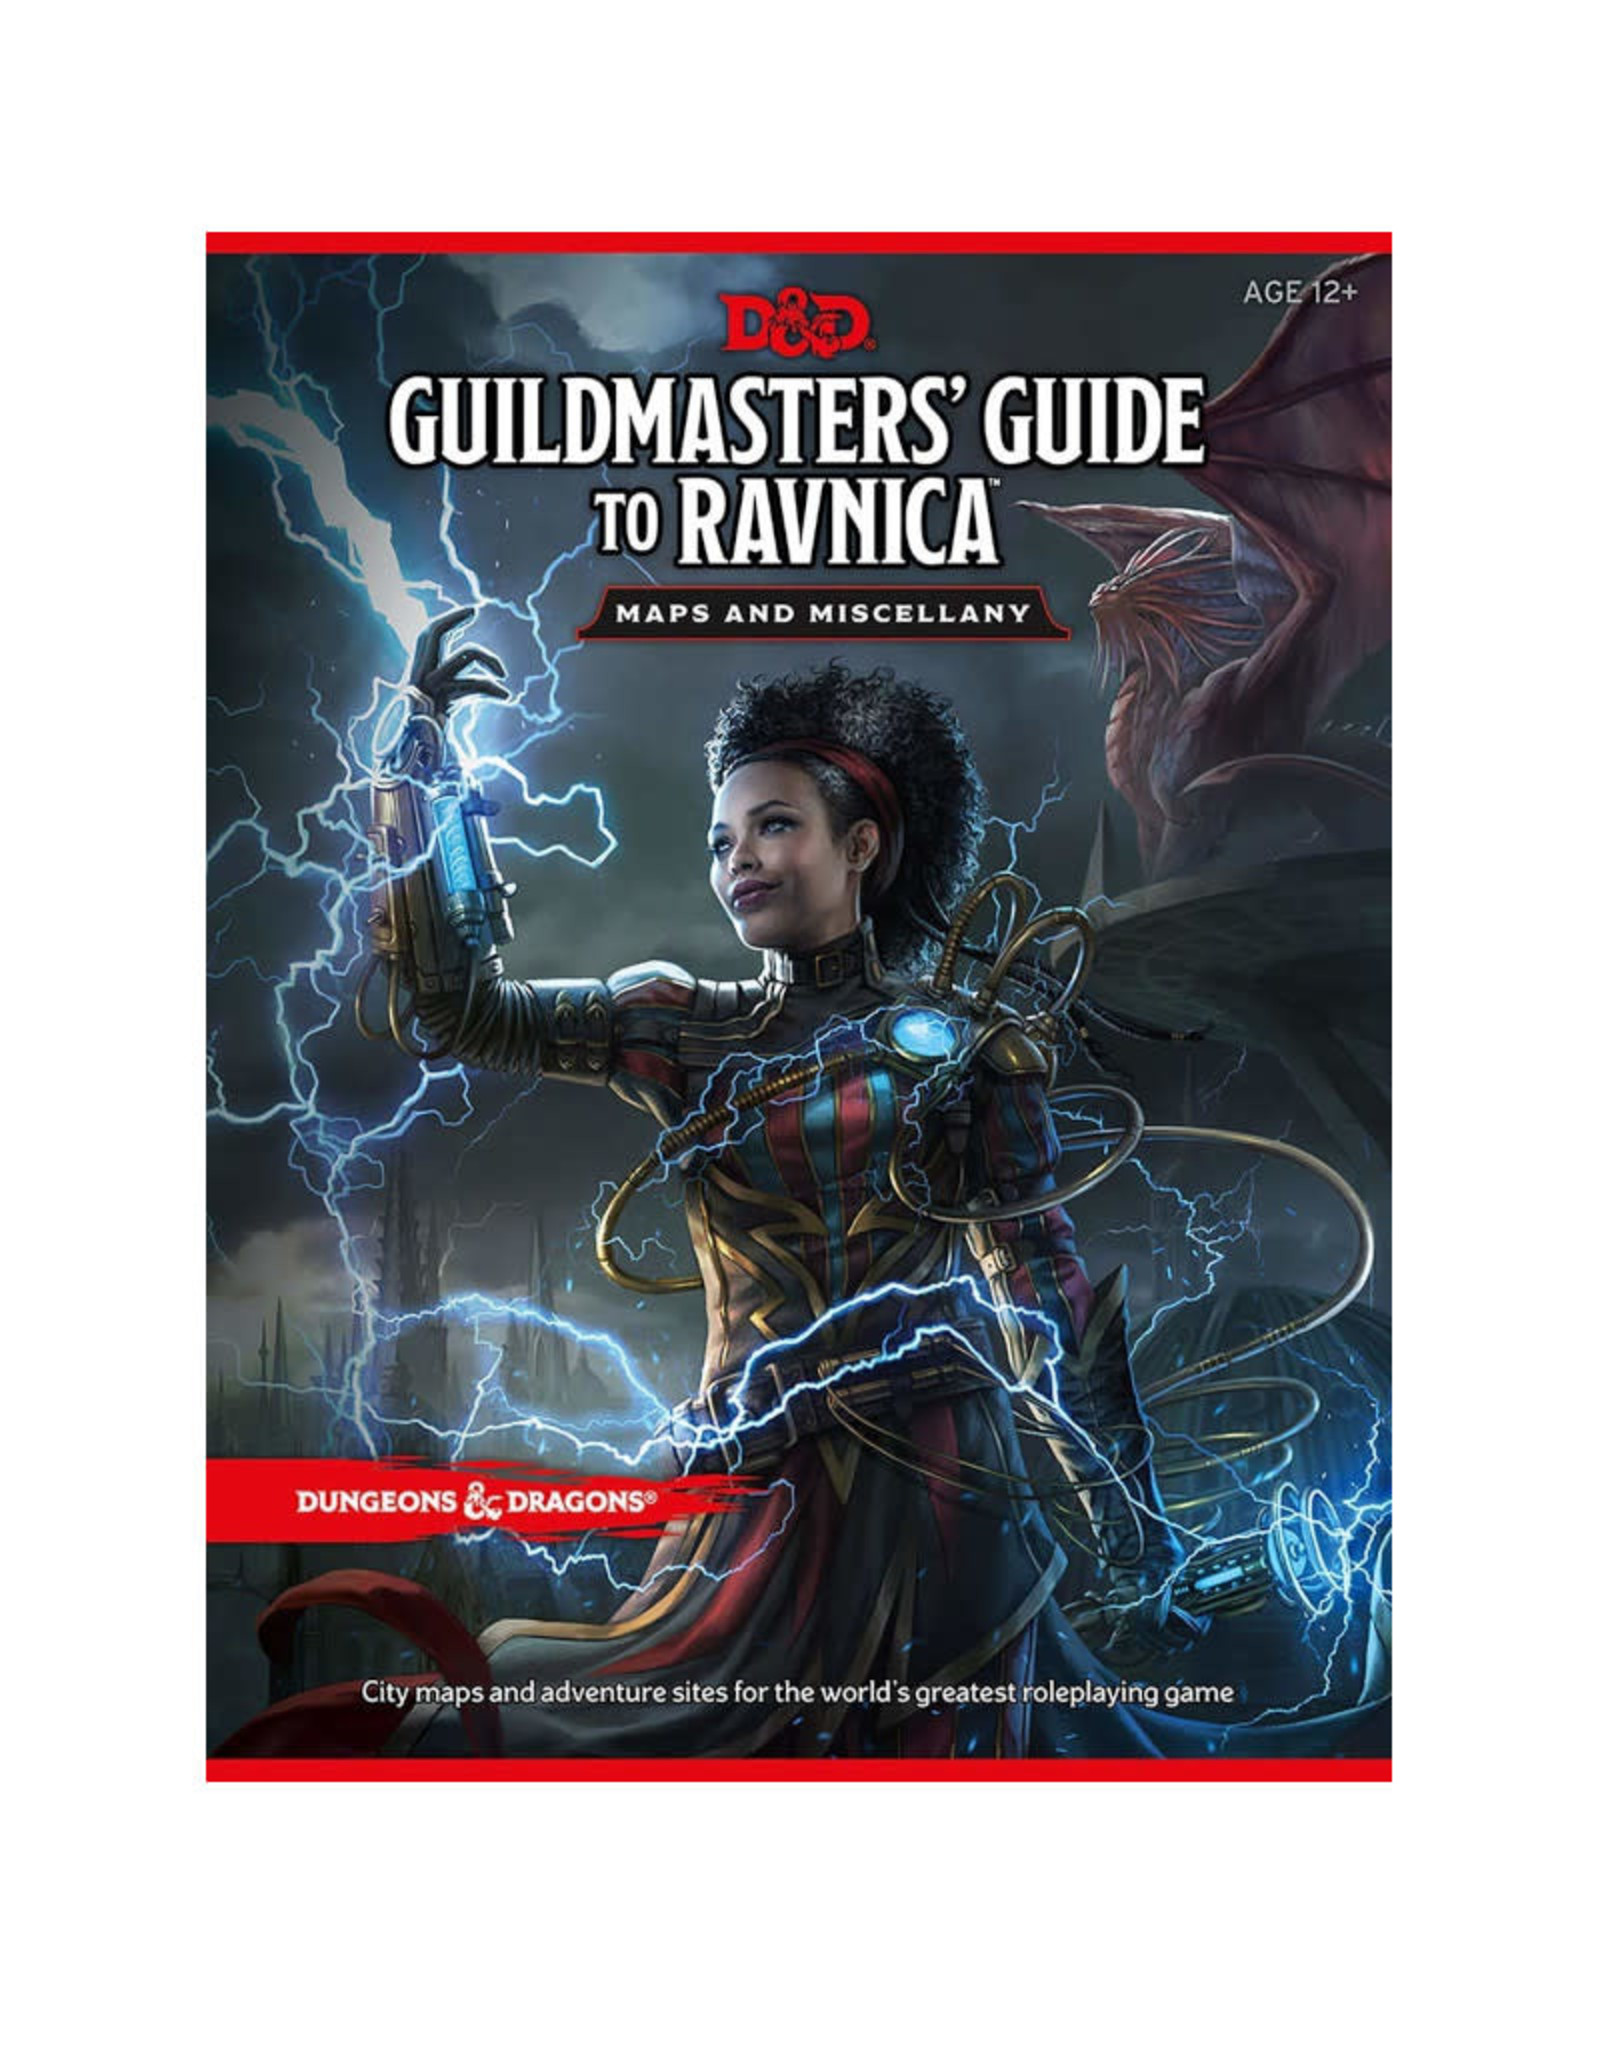 Wizards of the Coast D&D RPG: Guildmasters' Guide to Ravnica Maps and Miscellany